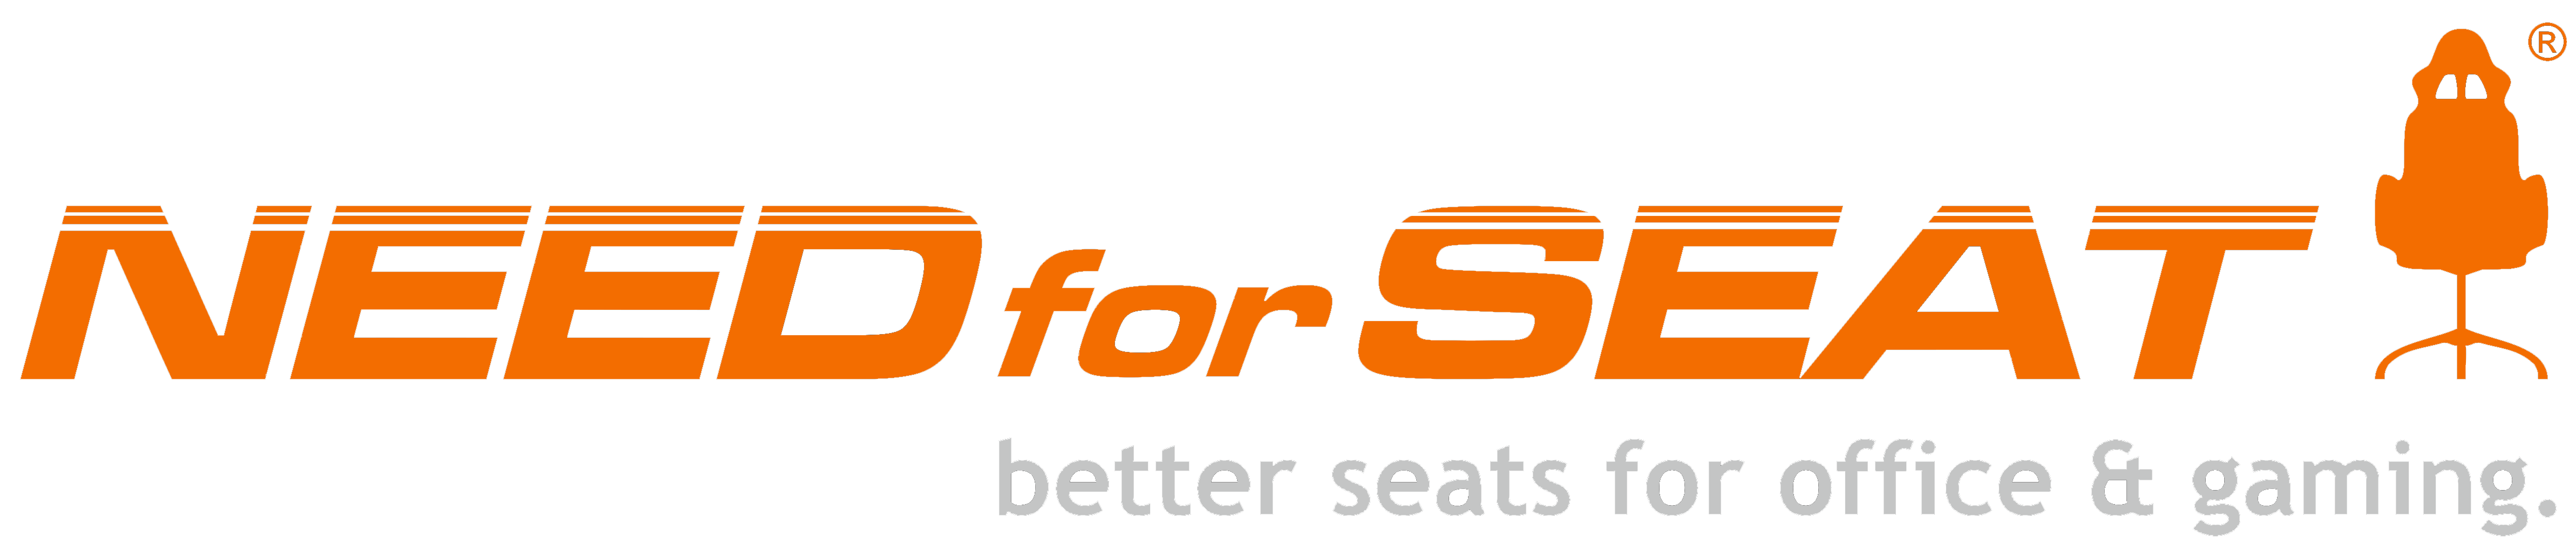 NEEDforSEATlogo.png